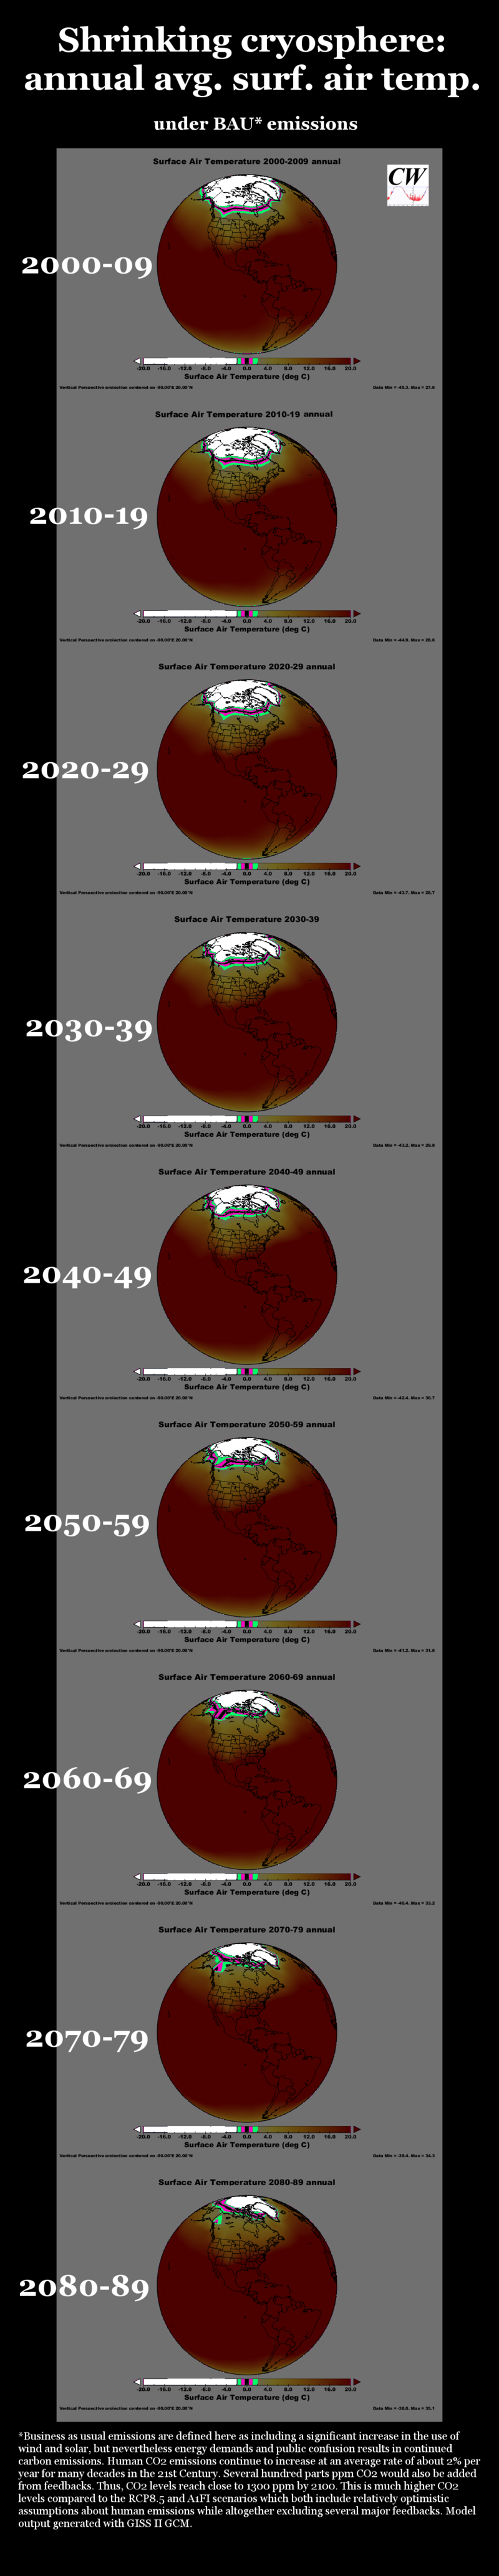 Shrinking cryosphere 2000-09 to 2080-89